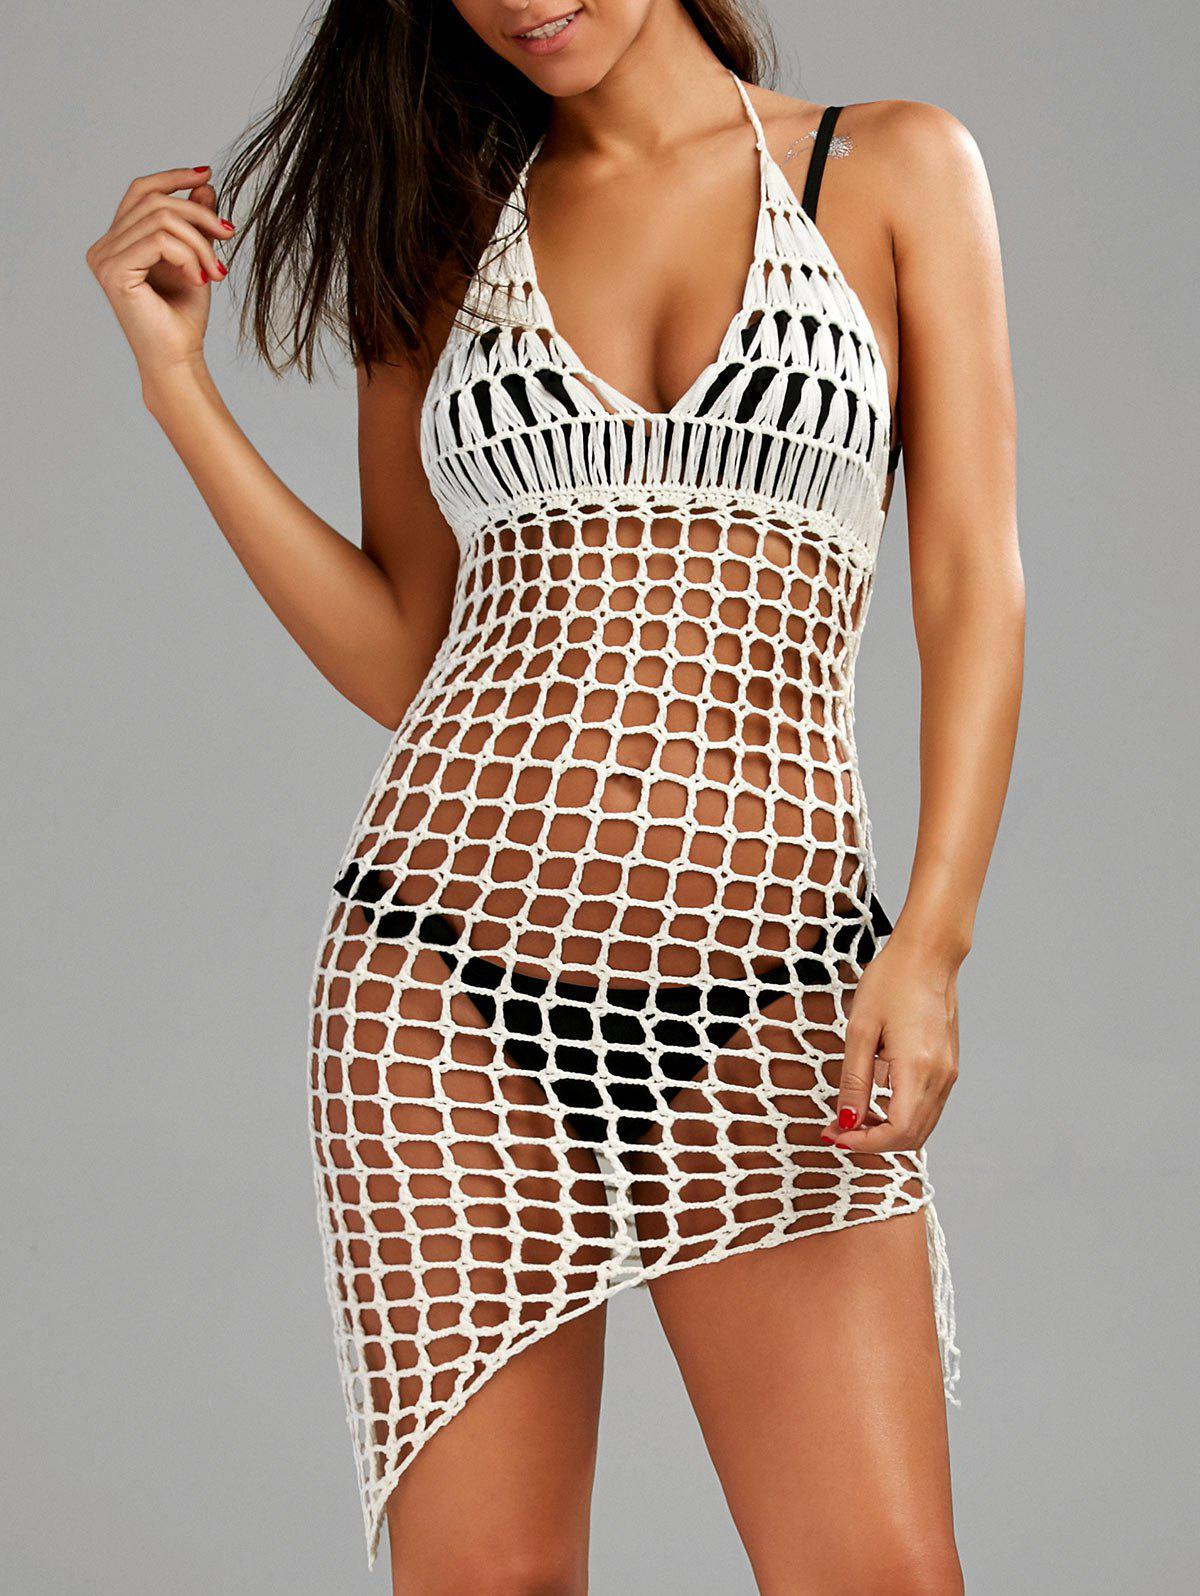 Halter Fishnet Crochet Cover-Up Swim Dress strappy cross back crochet cover up swim dress